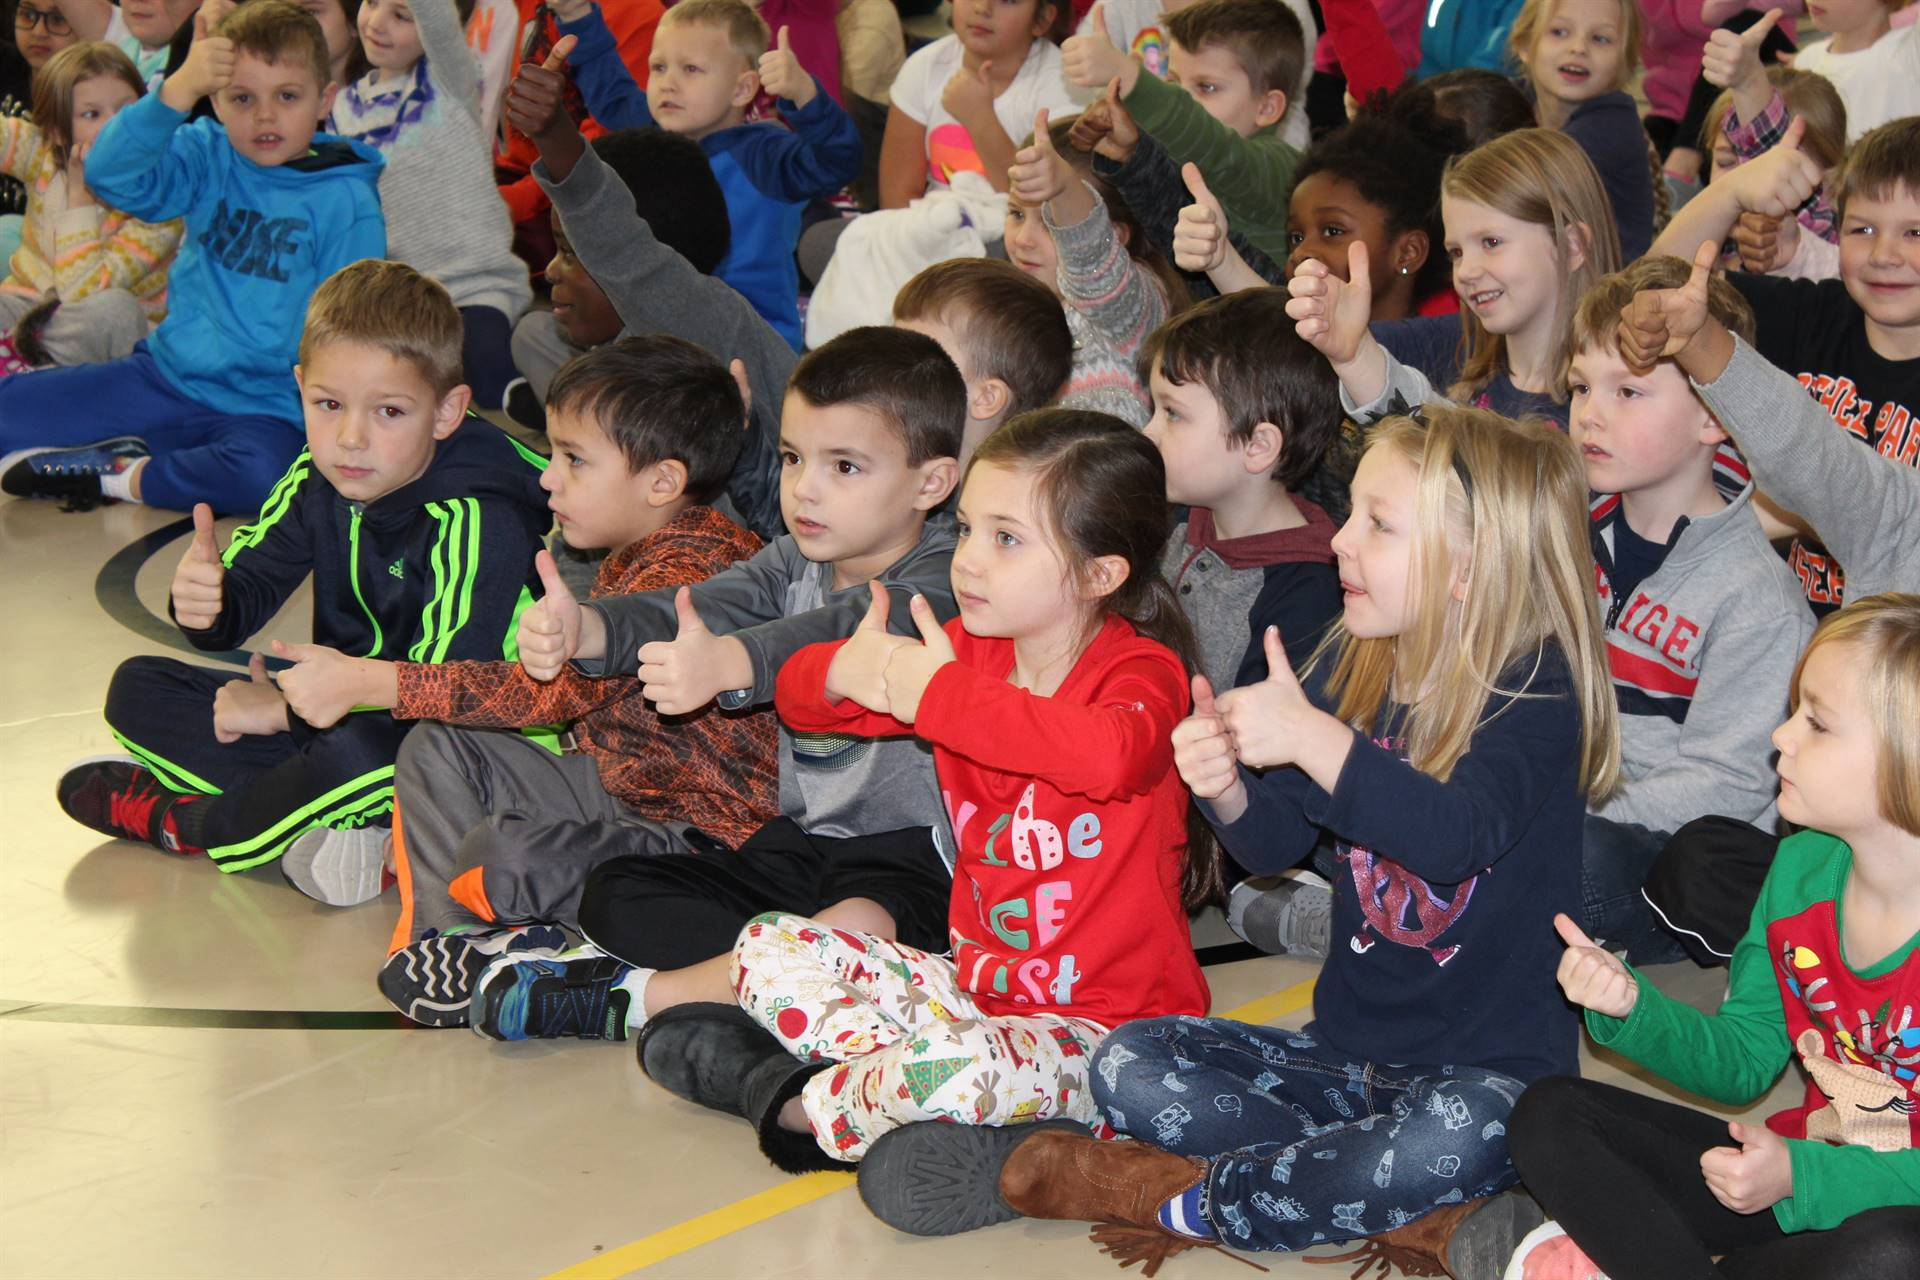 Students giving a thumbs up at the assembly